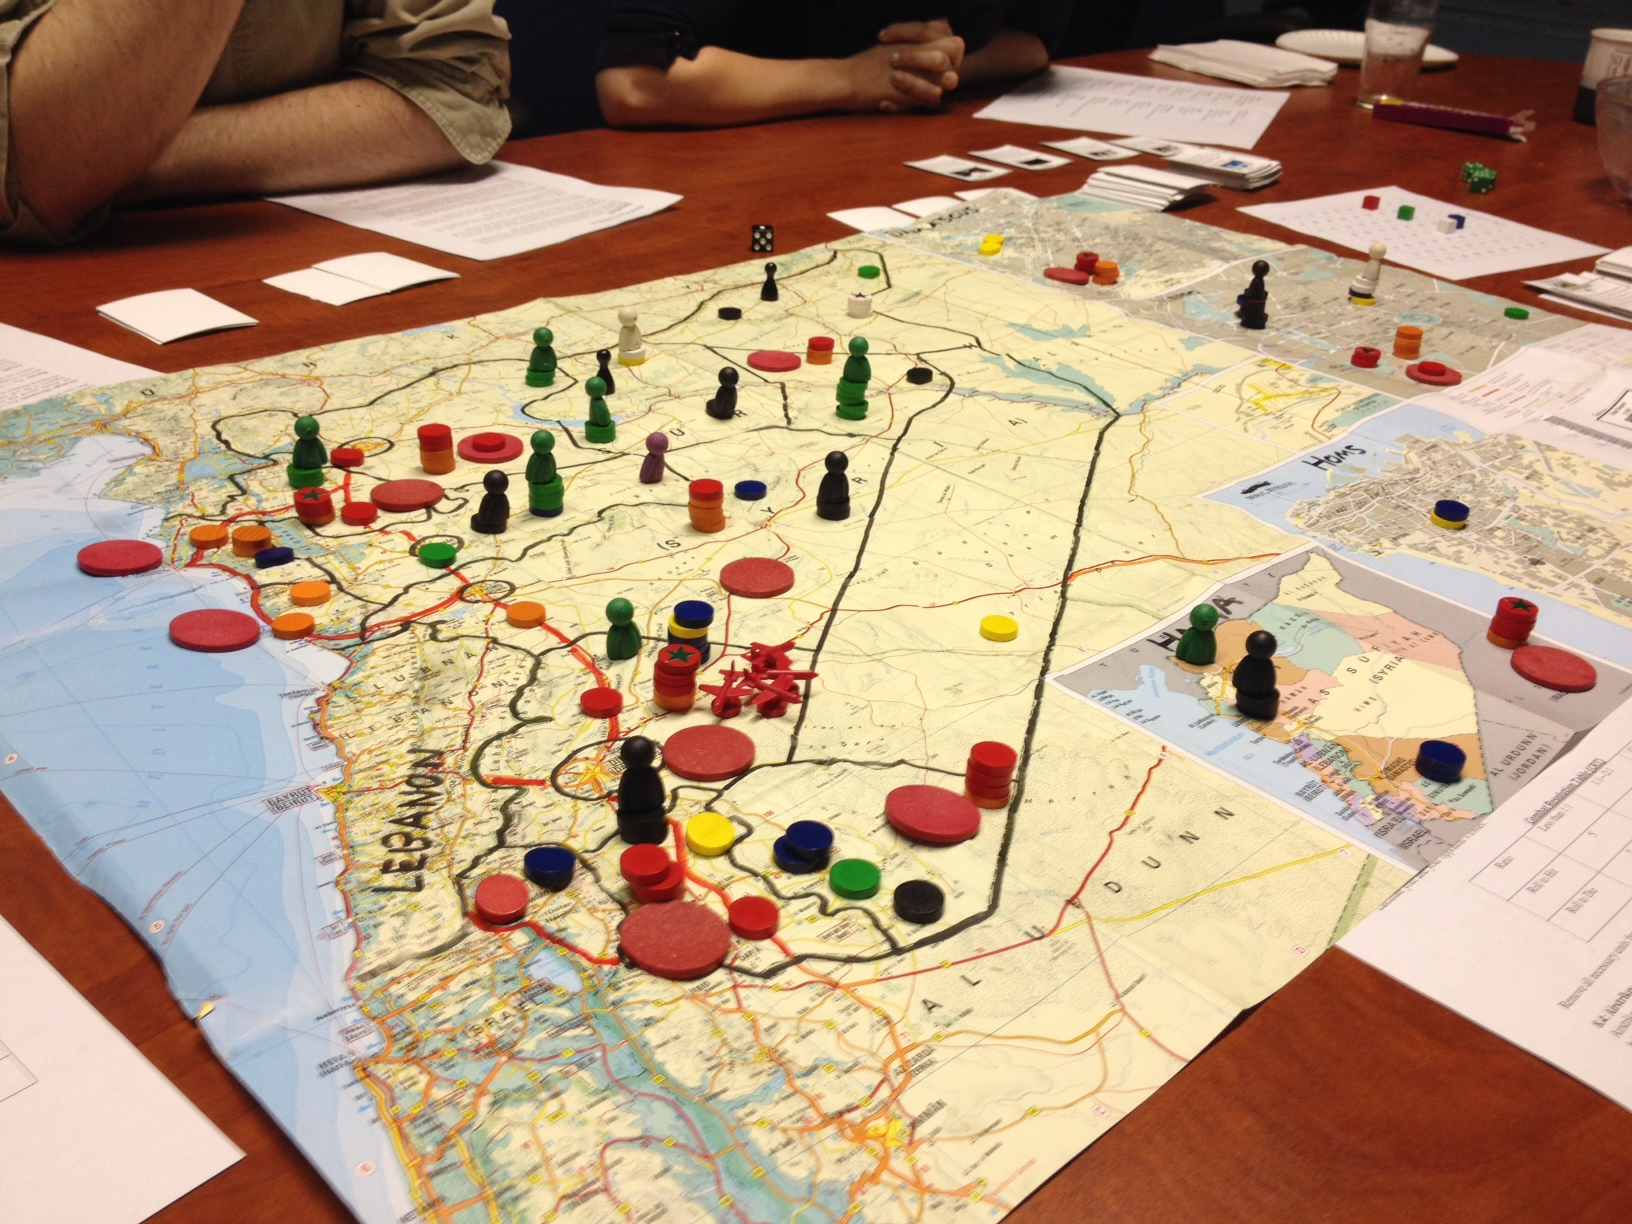 Gaming the syrian civil war part 3 paxsims using a modified commercial map for the initial game board the large red disks are publicscrutiny Images